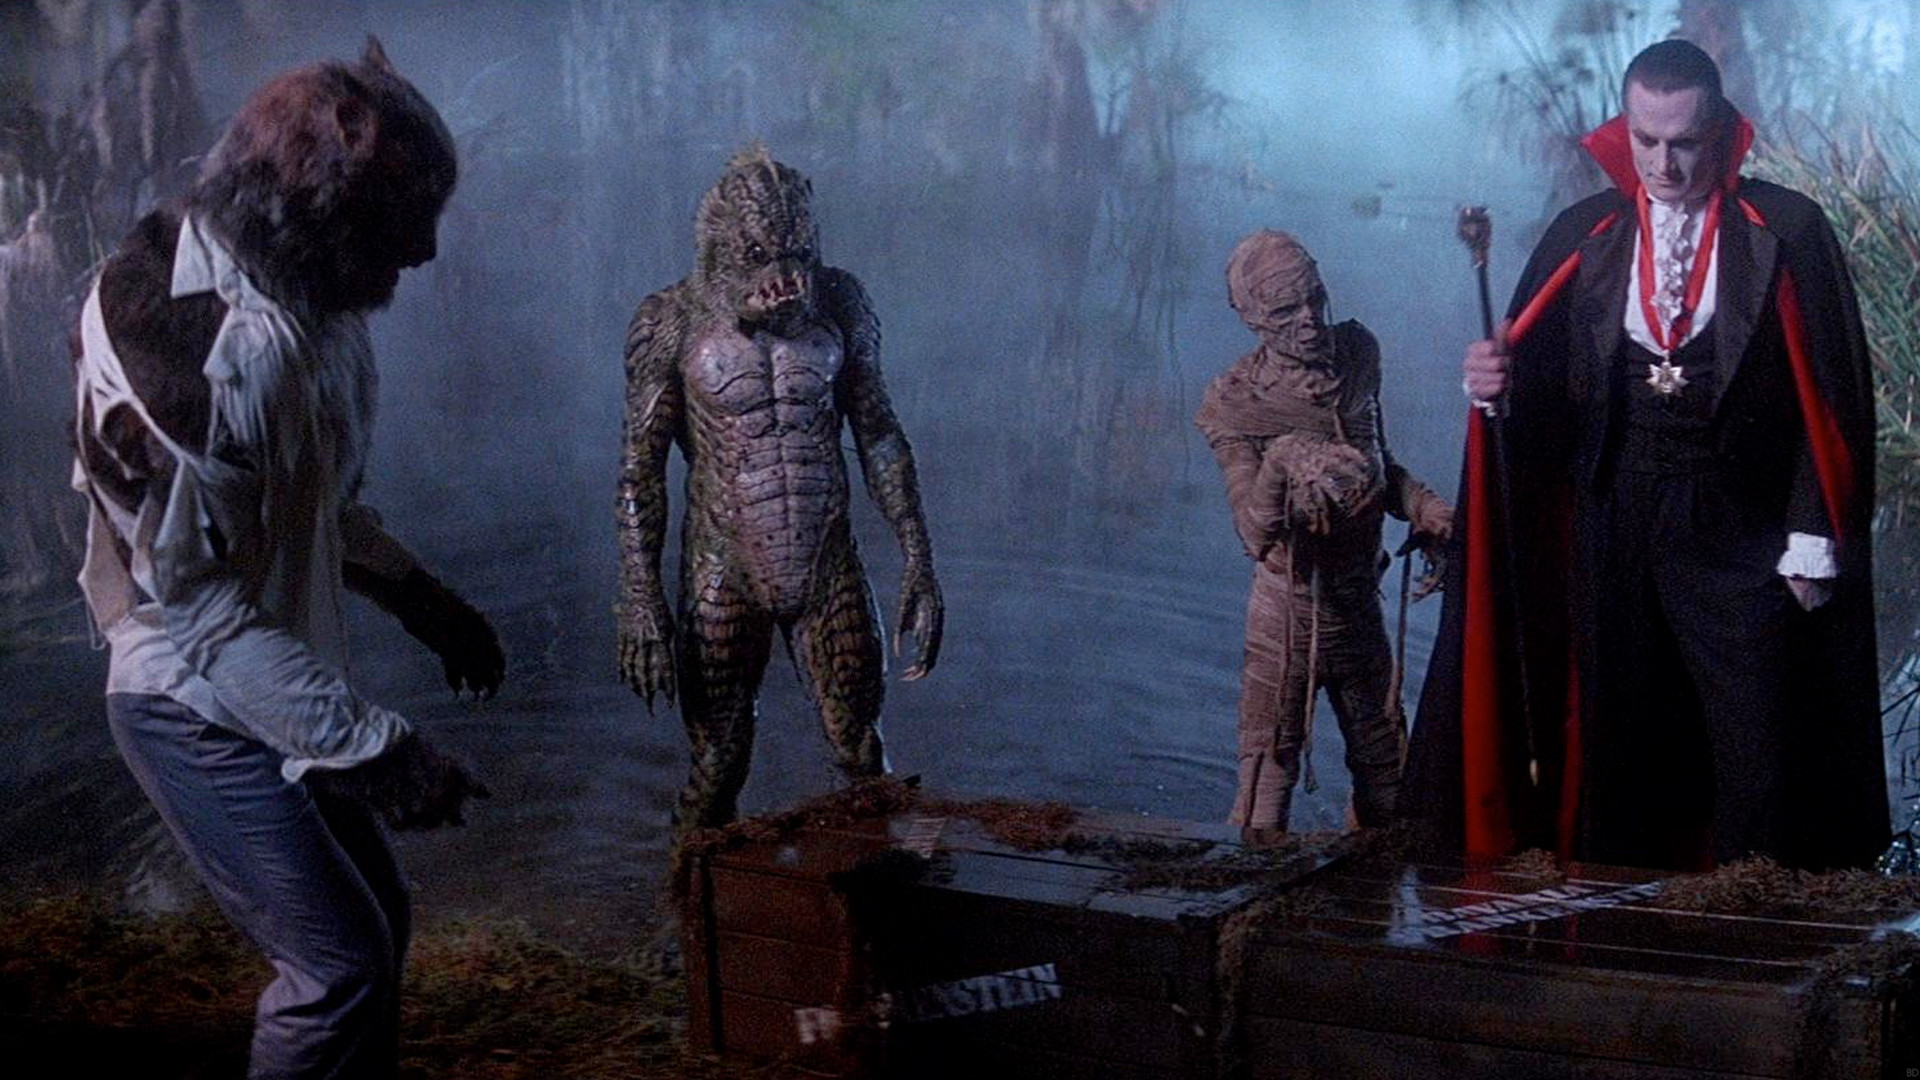 This is a still image from the film The Monster Squad.